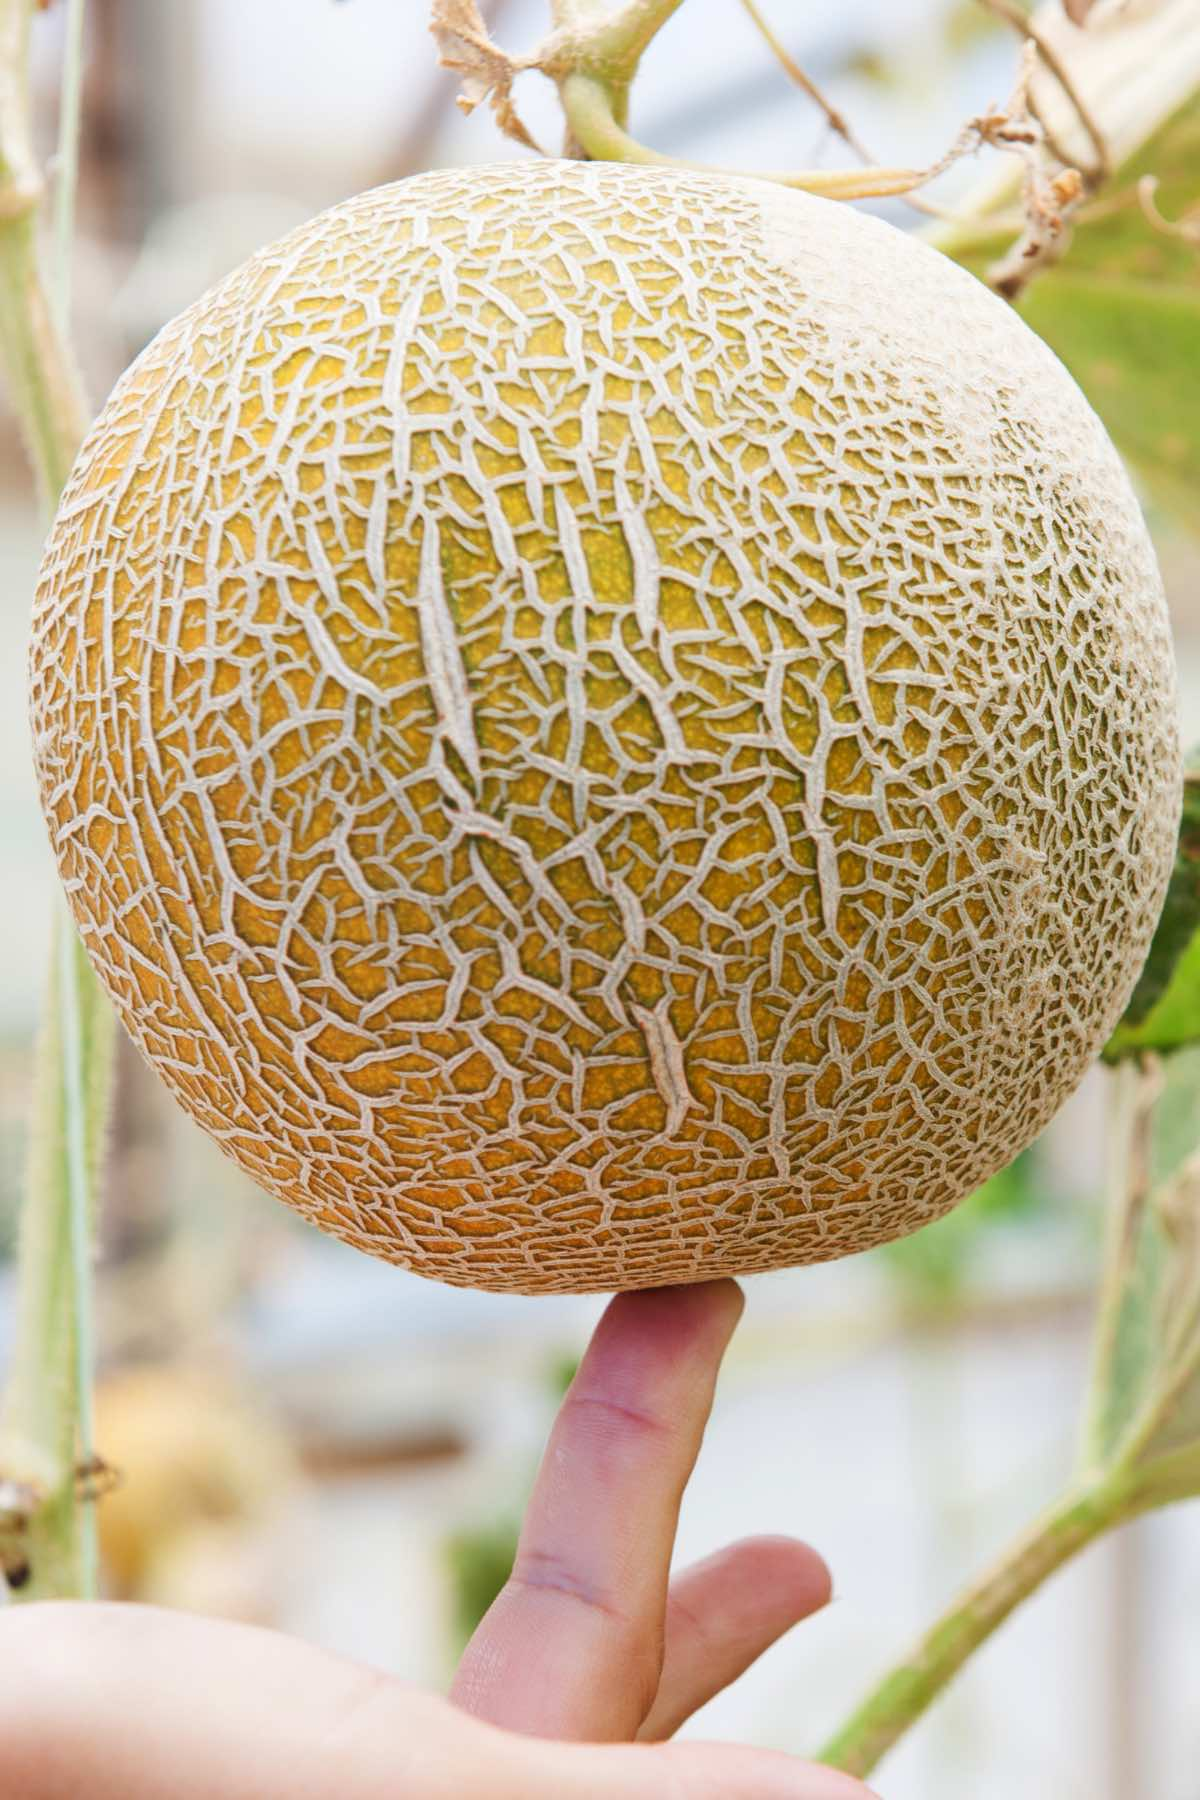 Determining how to tell is a cantaloupe is ripe by checking firmness to the touch